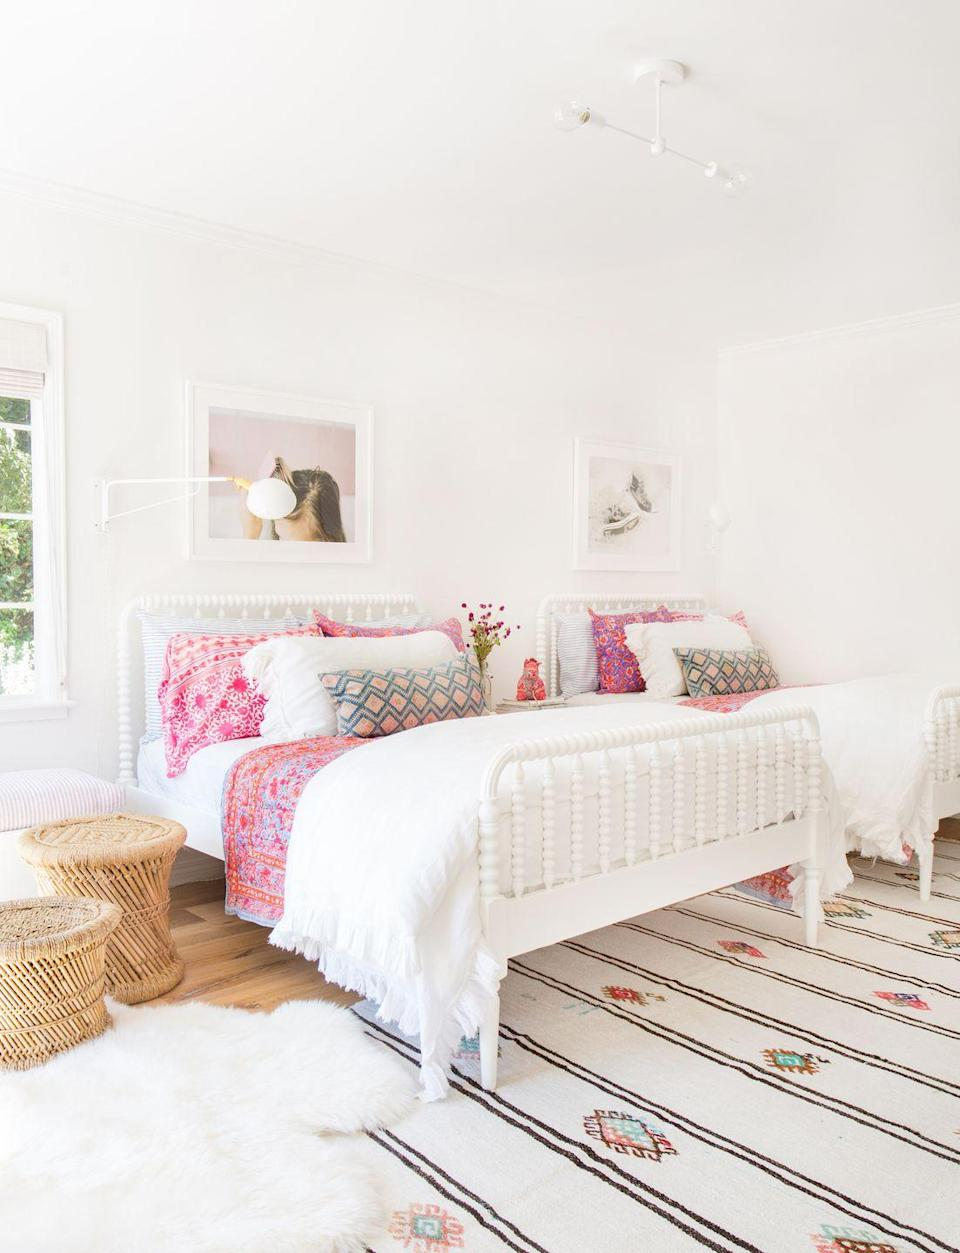 <p>If your teens share one large room, consider two queen beds instead of two twin-sized beds if you have the space. The upgrade will make sharing a room feel a lot more mature and comfortable. Incorporate boho elements with a patterned rug, bright sheets and pillows, and rattan ottomans. Abstract photography is a chic, modern touch.</p>